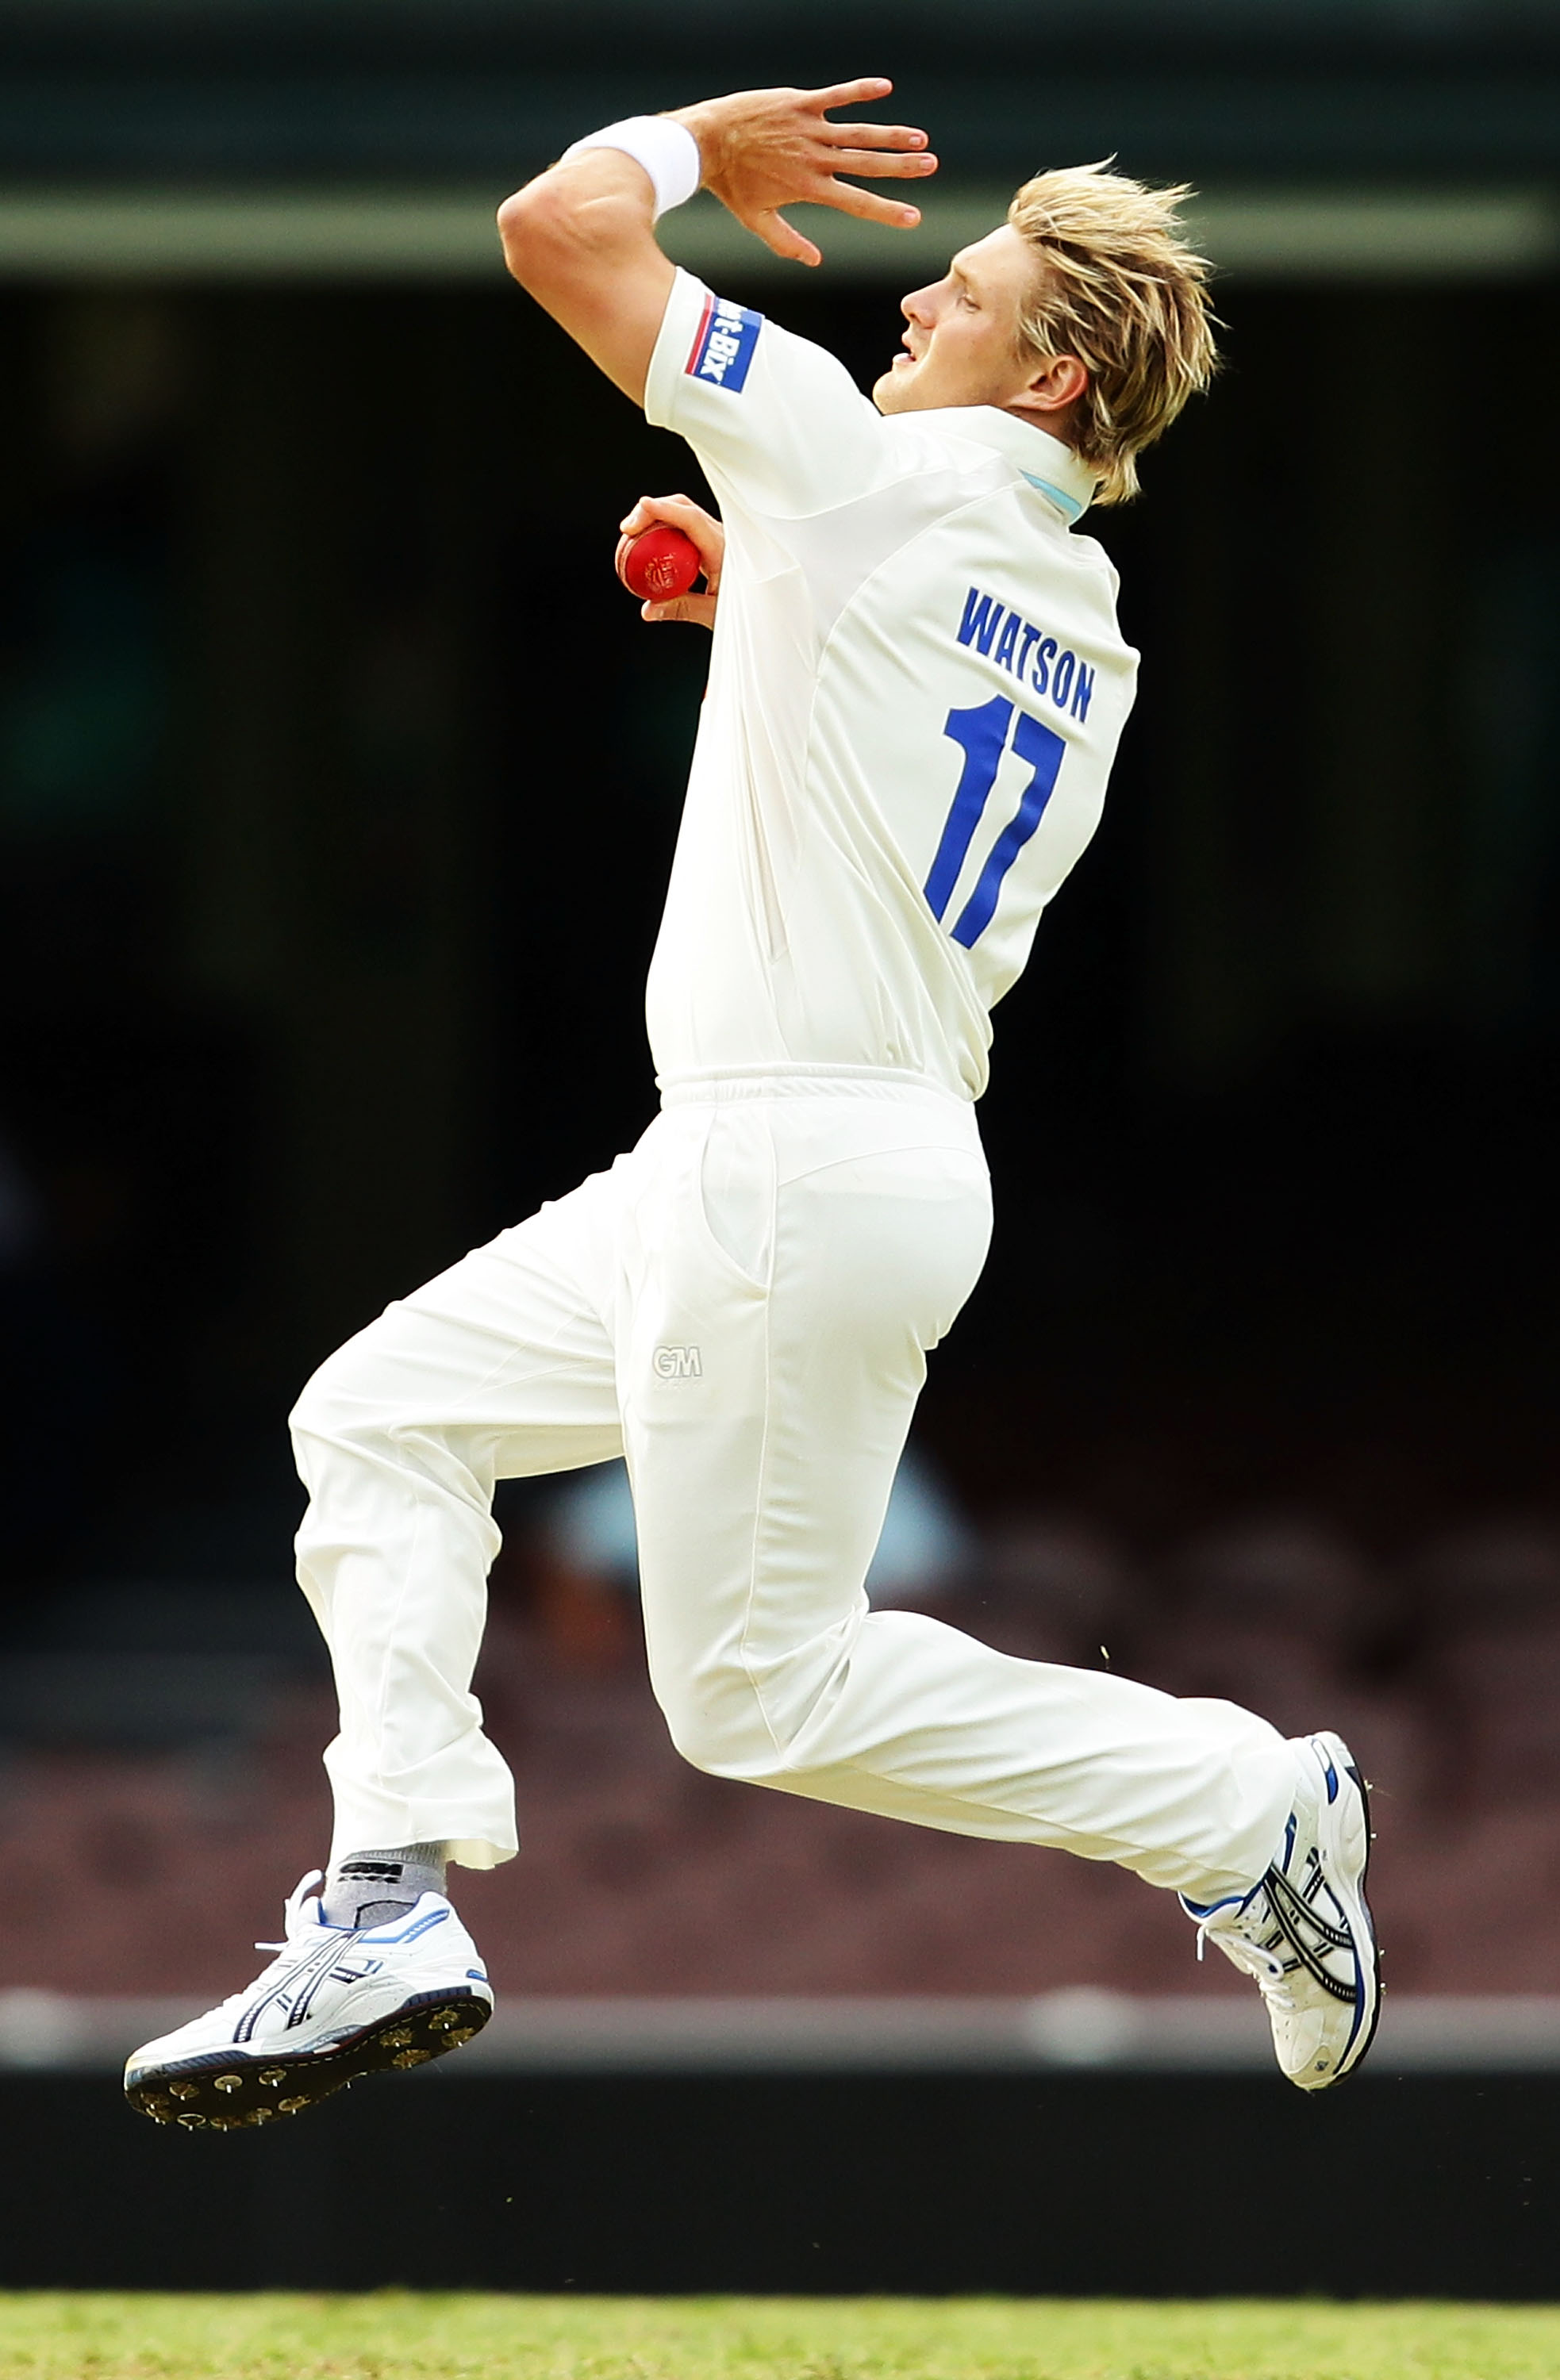 Shane Watson should not be allowed to settle